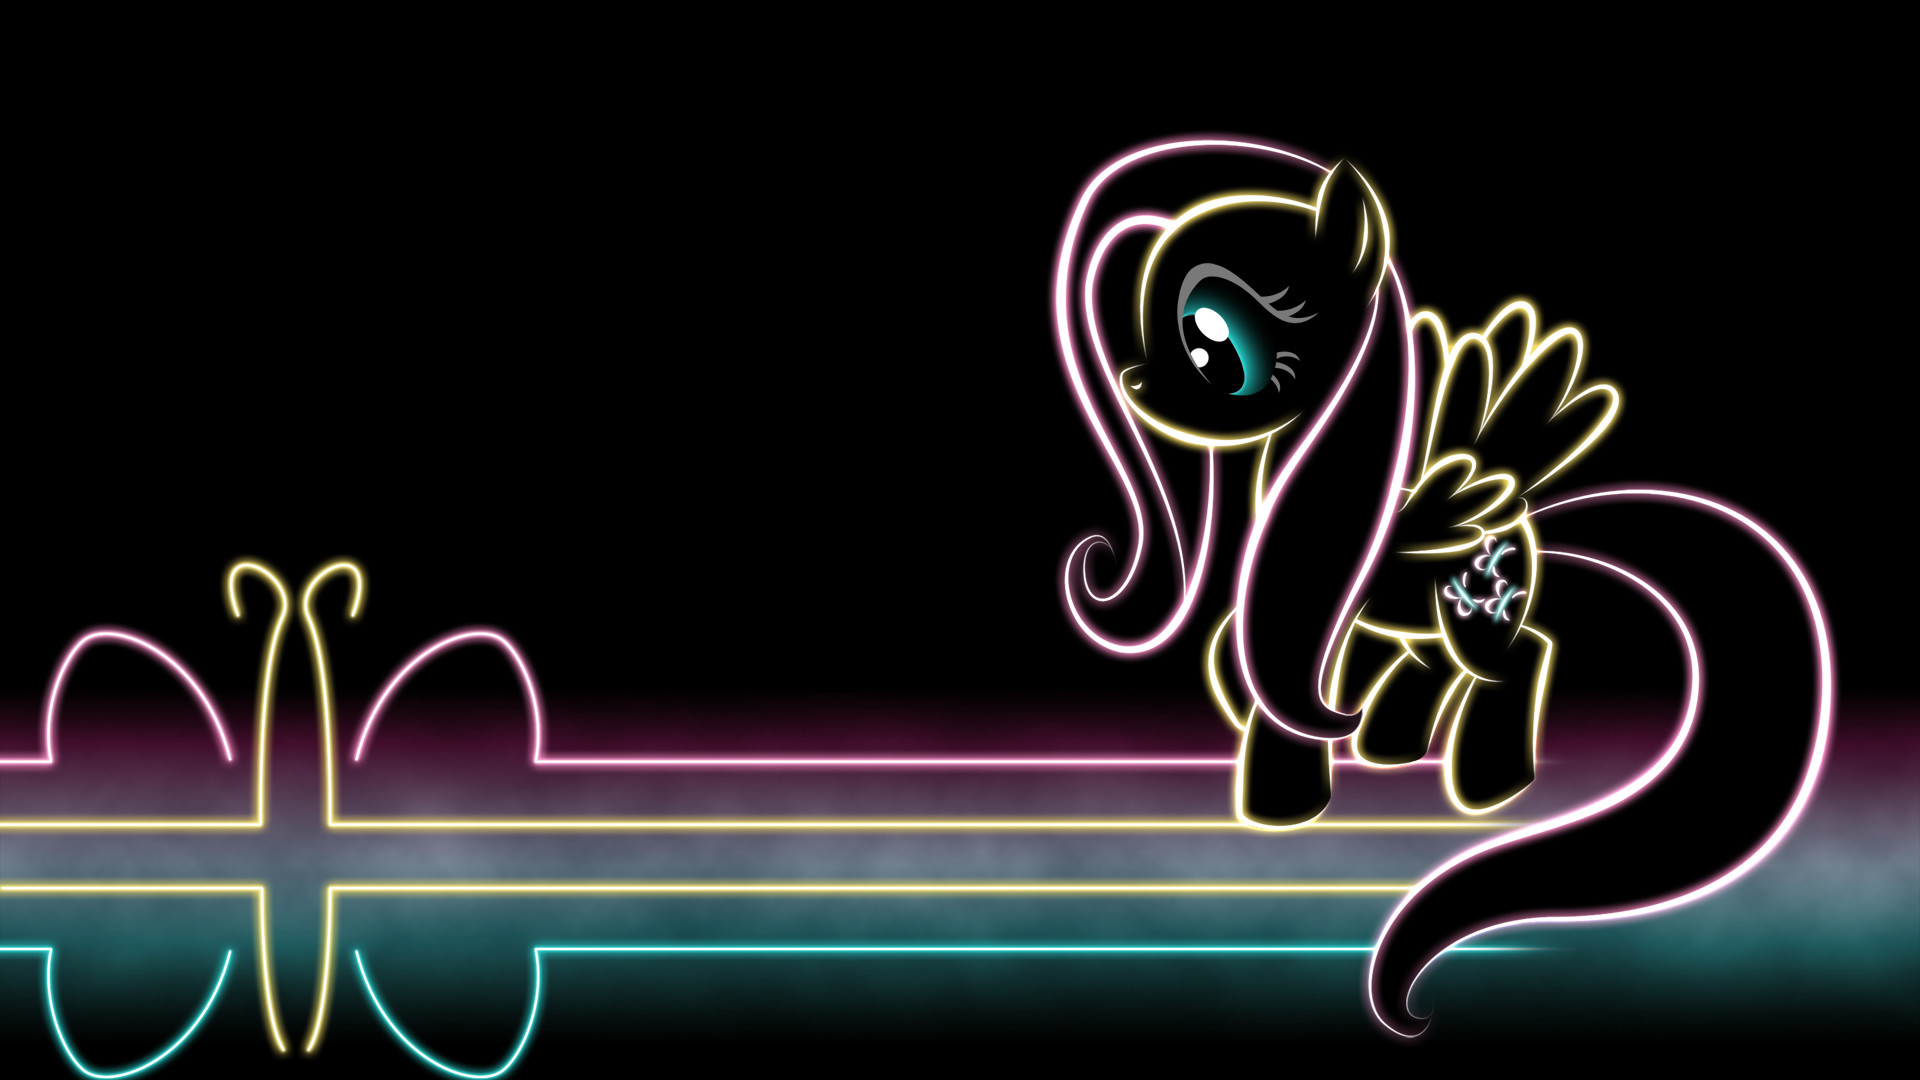 Cute MLP Wallpapers 77 Images